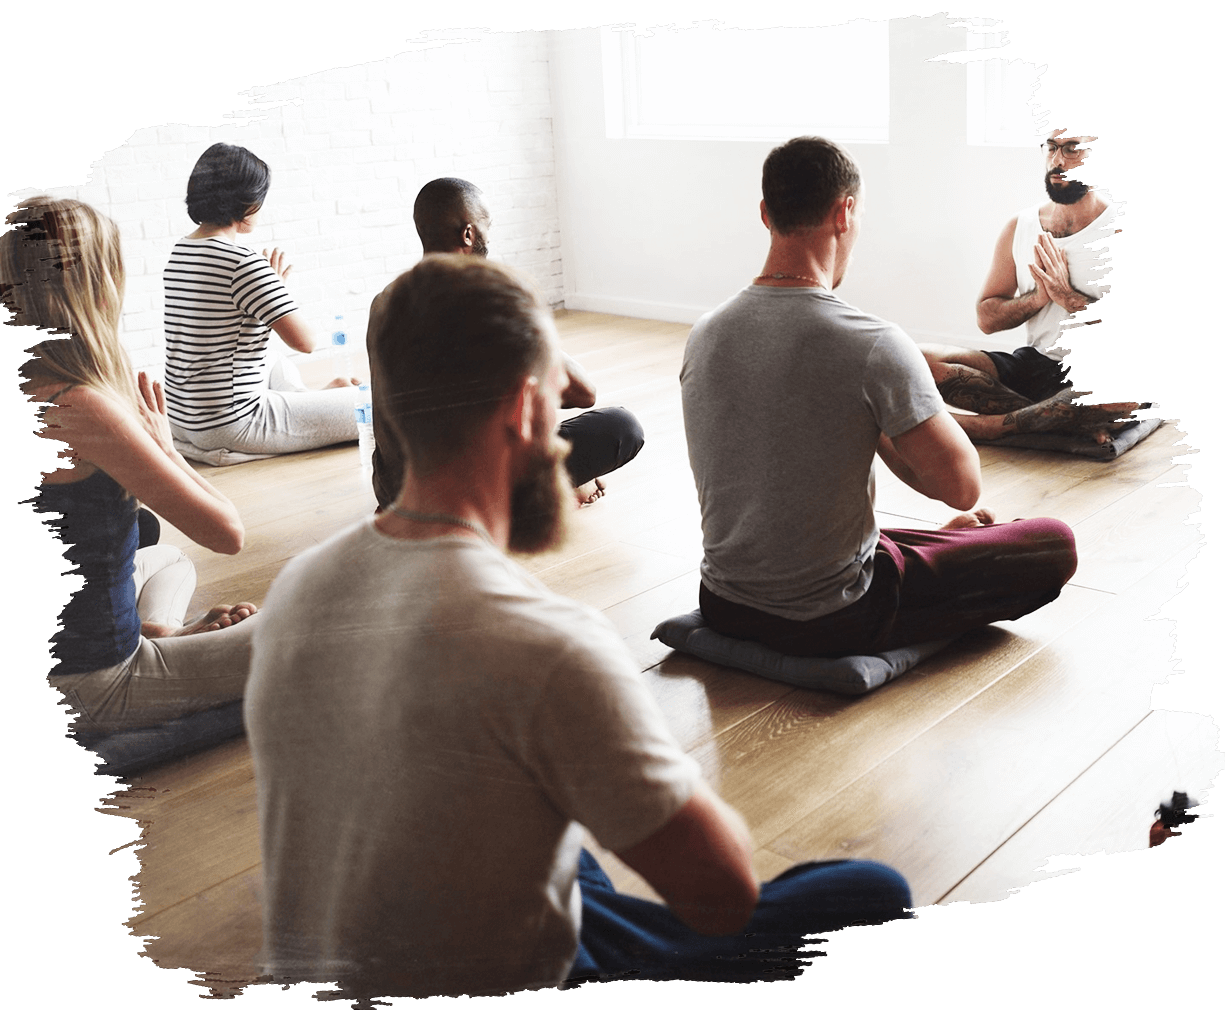 This is an image of a ta group of men practicing holistic mediation